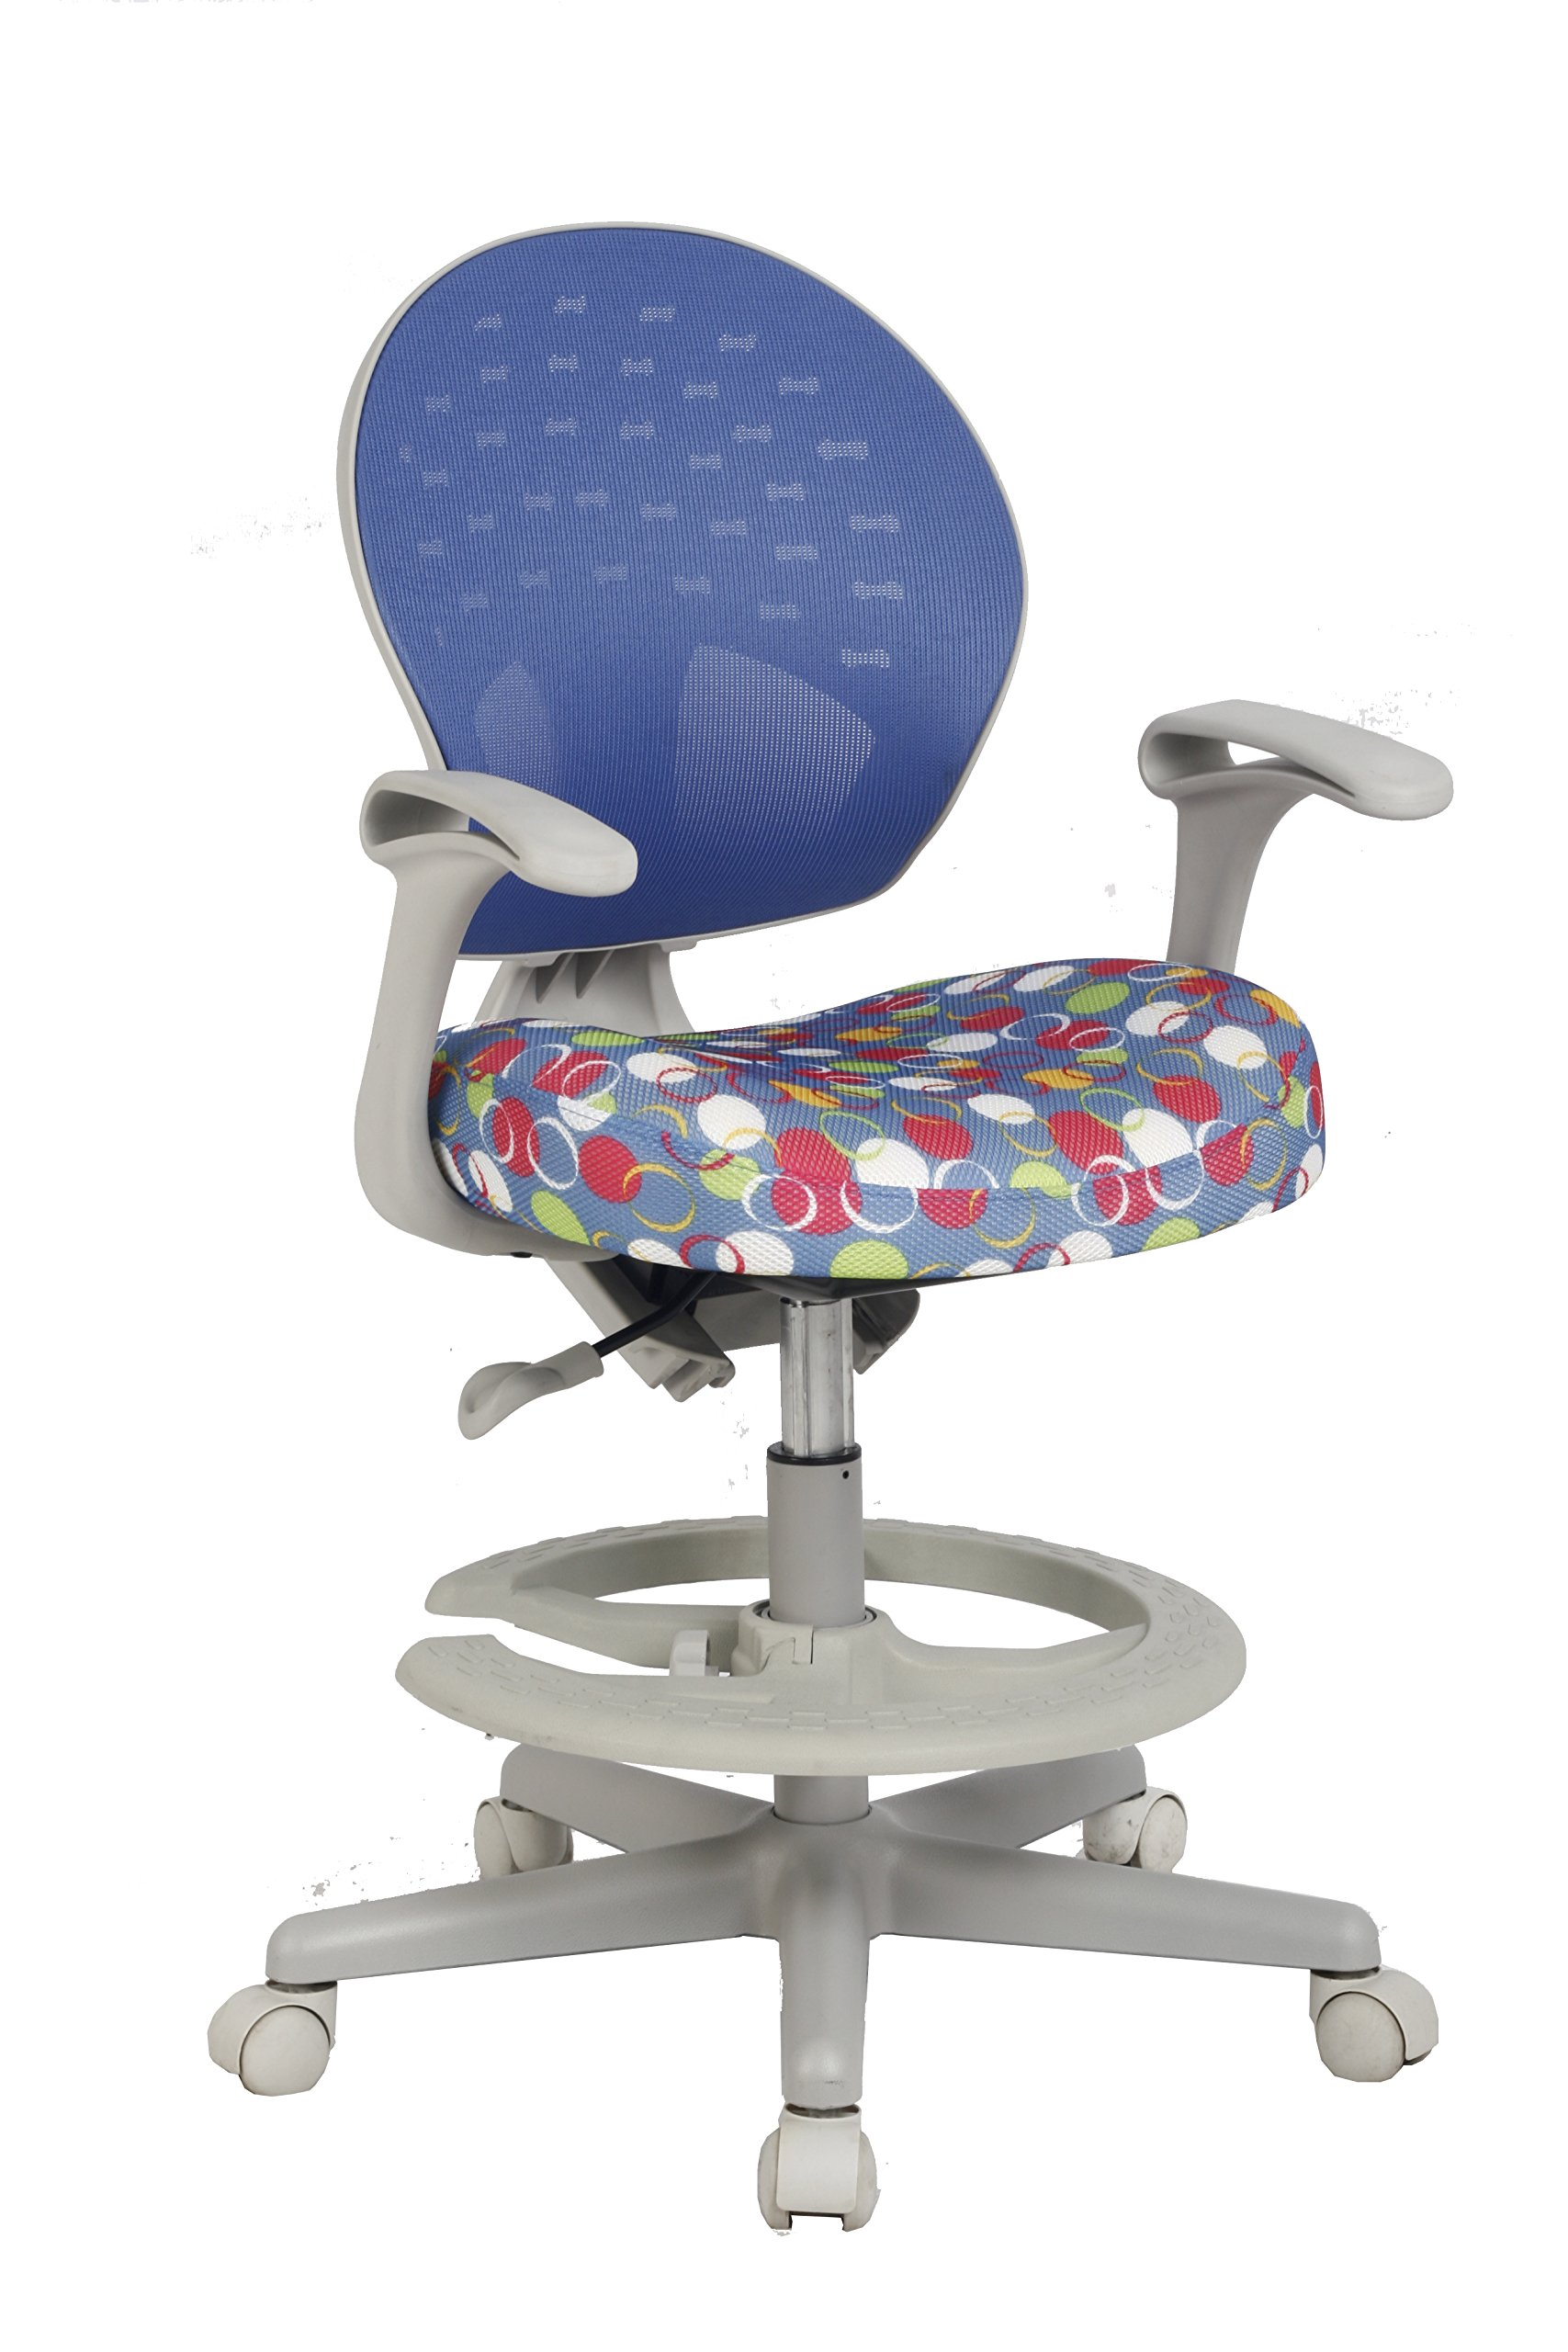 VIVA OFFICE Children's Desk Chair with Adjustable Height,Depth and Foot Rest